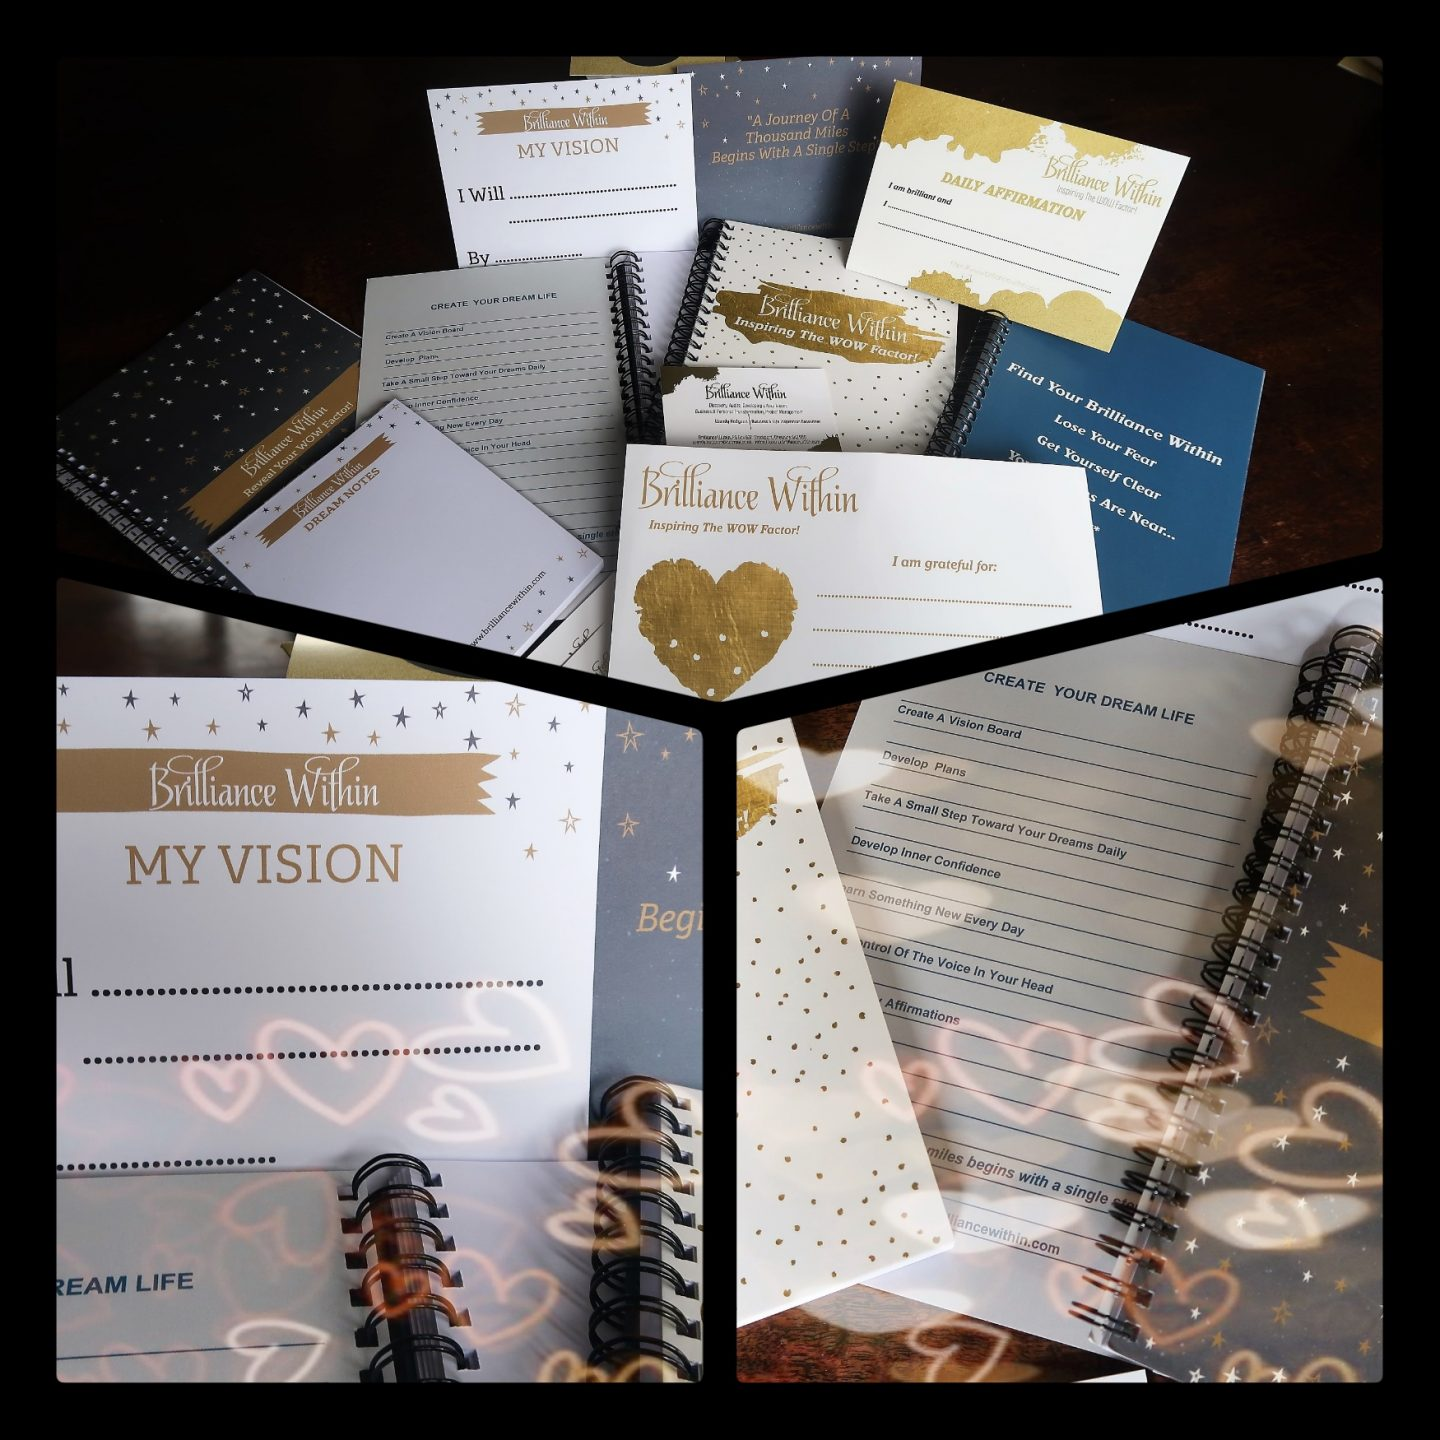 How To Win Brilliance Within's Law of Attraction Stationery Set